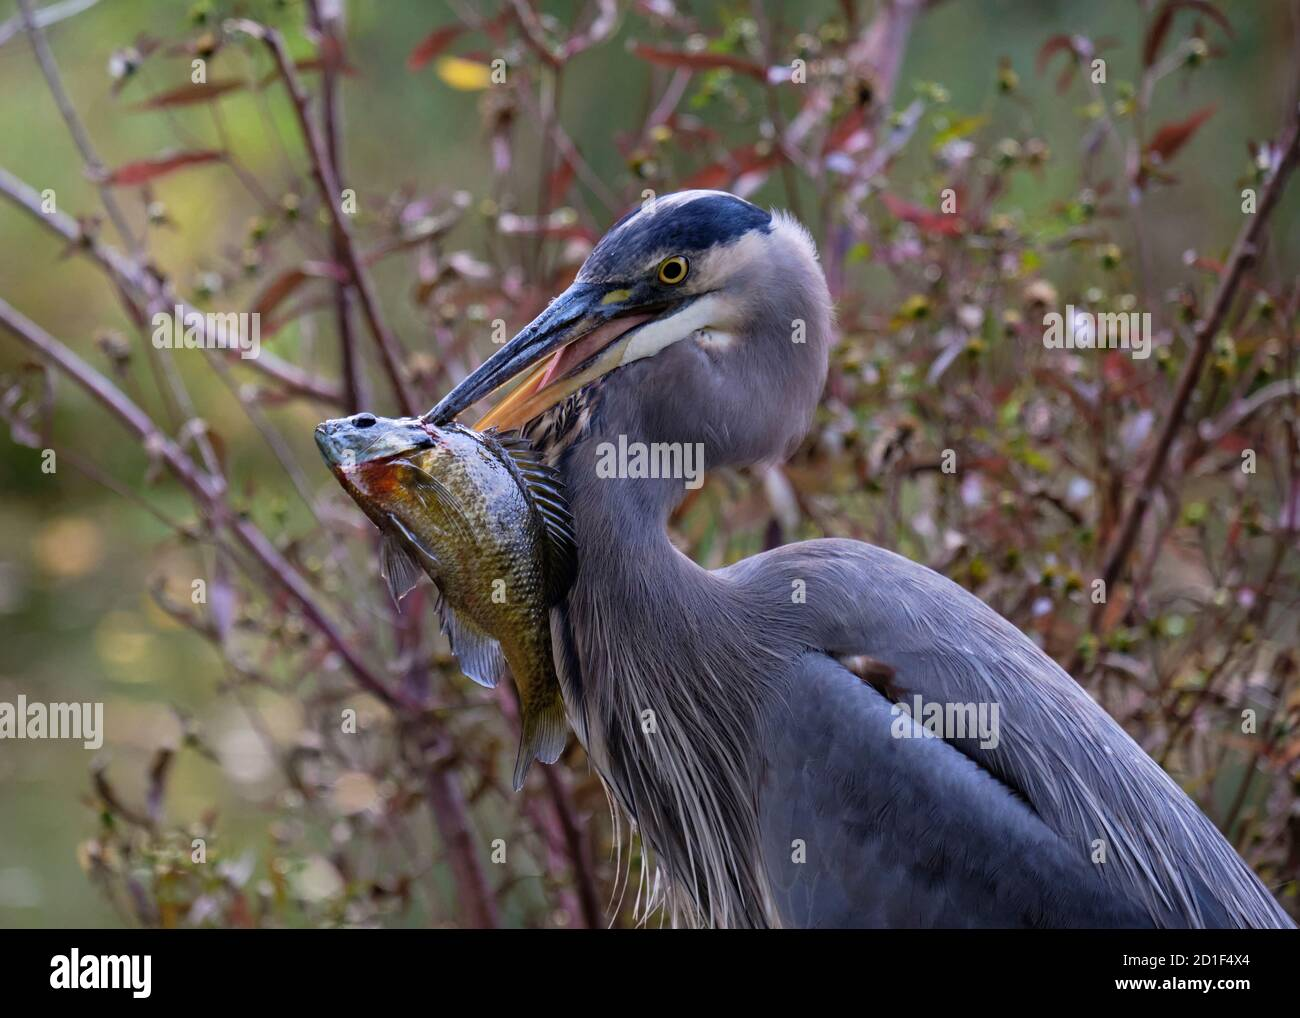 profile-of-a-great-blue-heron-holding-a-fish-in-its-beak-which-it-stabbed-through-during-morning-fishing-in-autumn-2D1F4X4.jpg